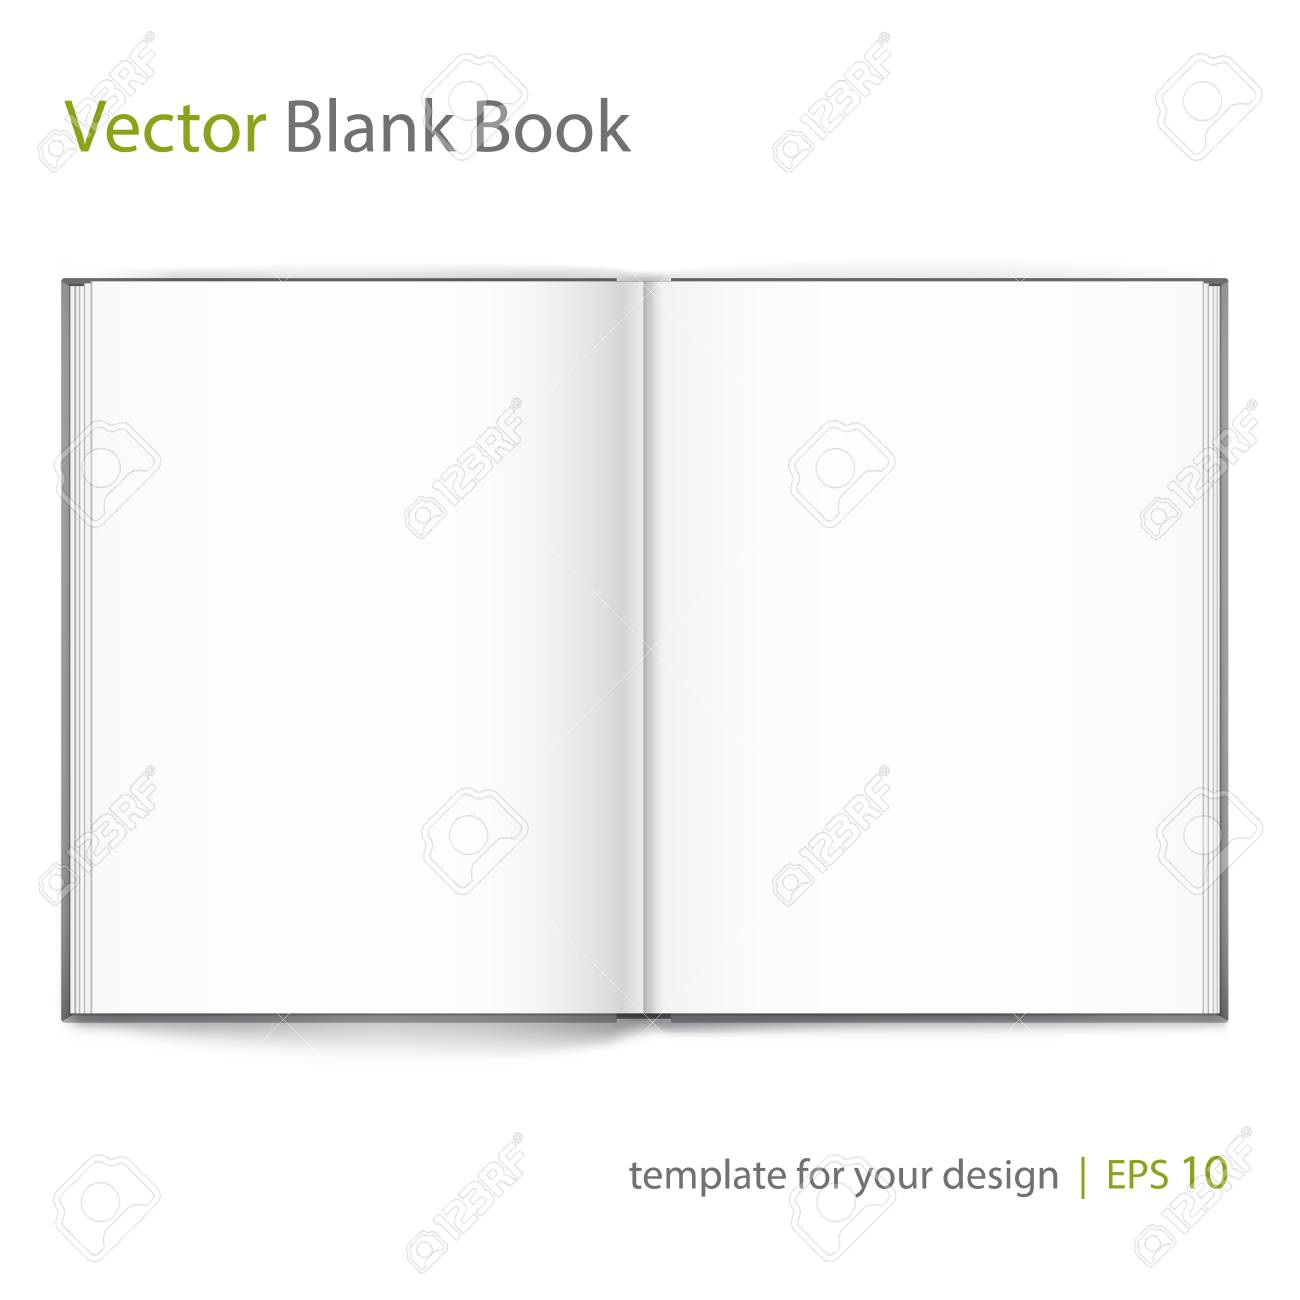 Vector blank of open hardcovered book on white background. - 61723552